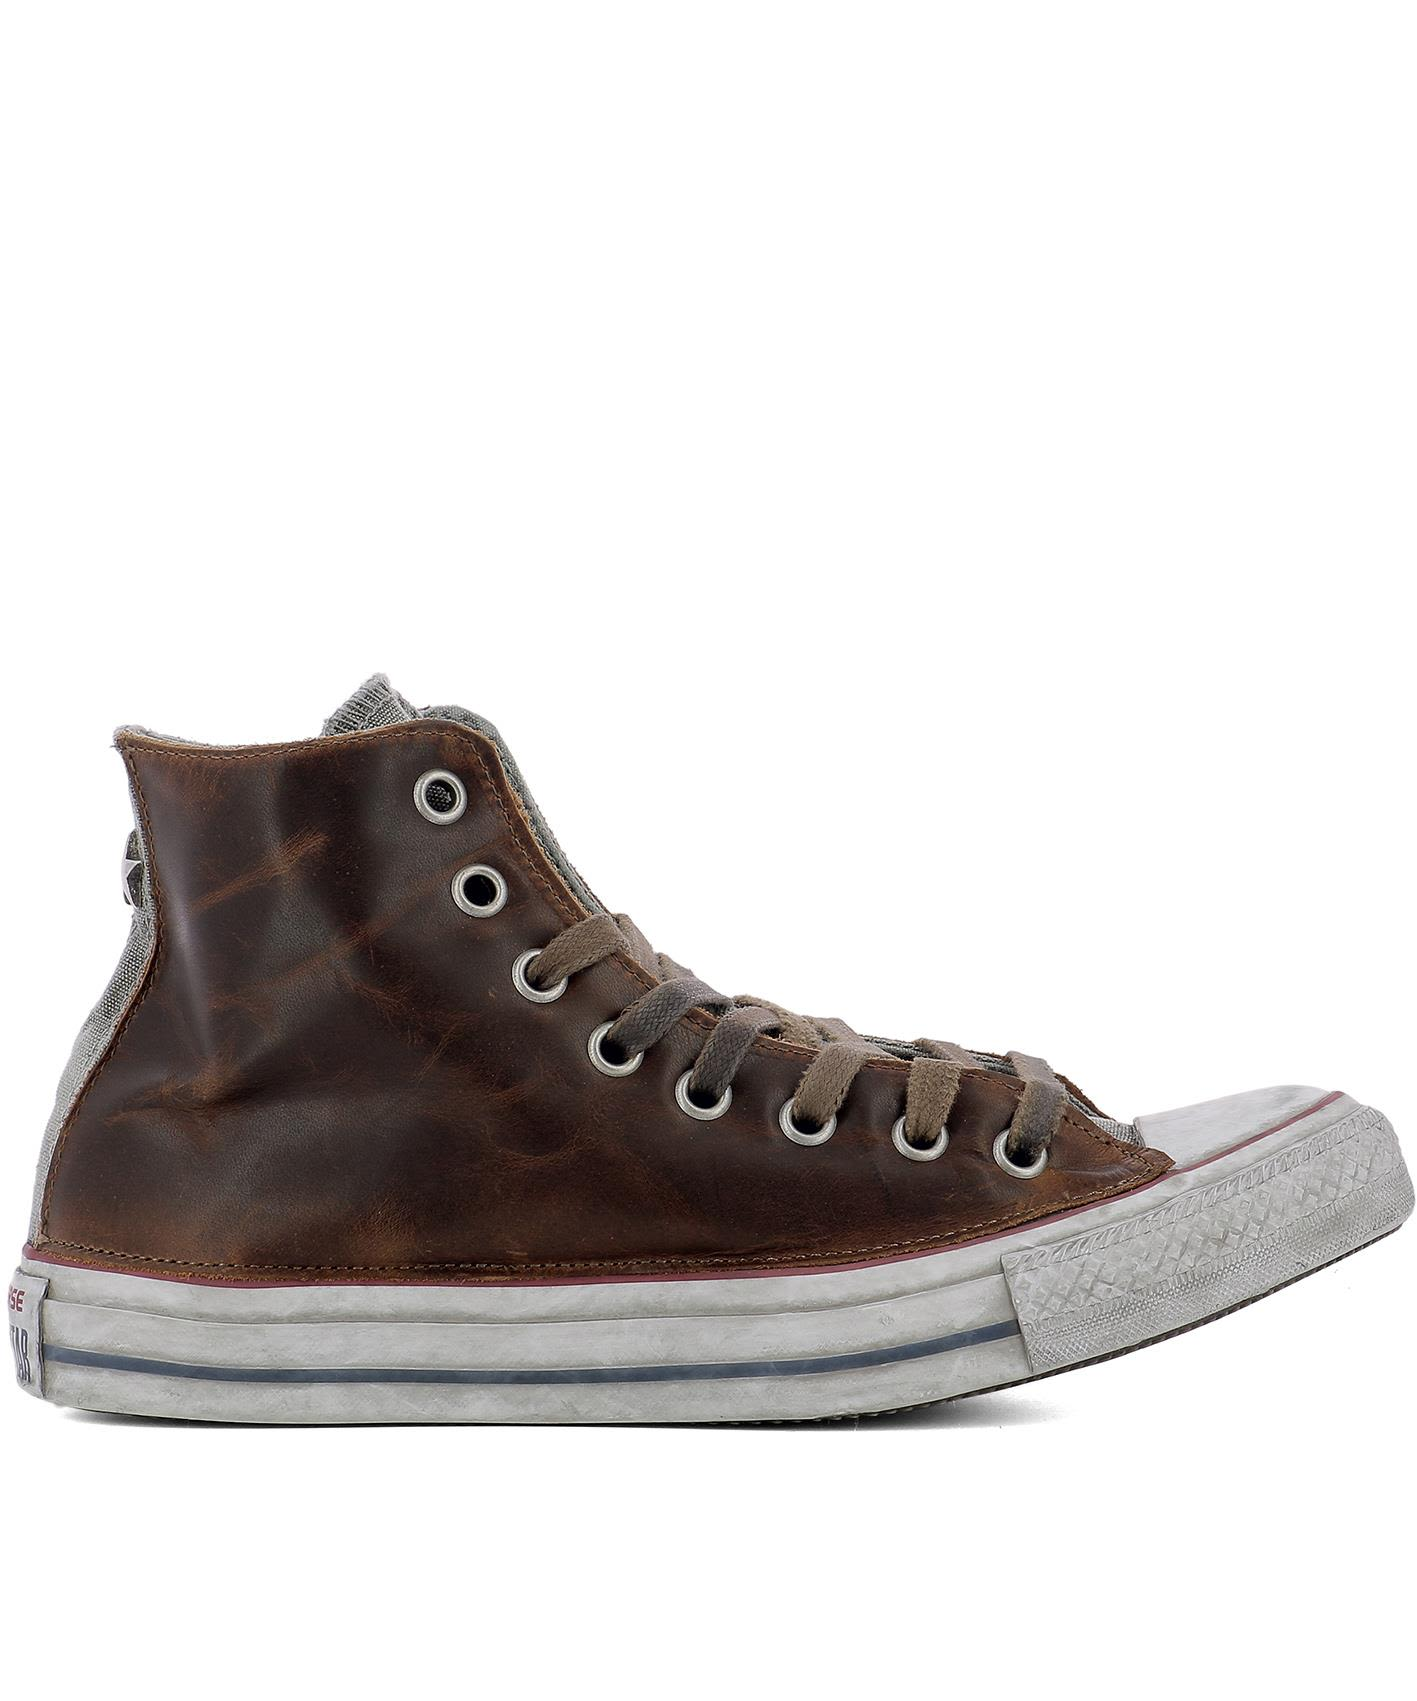 Brown Leather All Star Sneakers